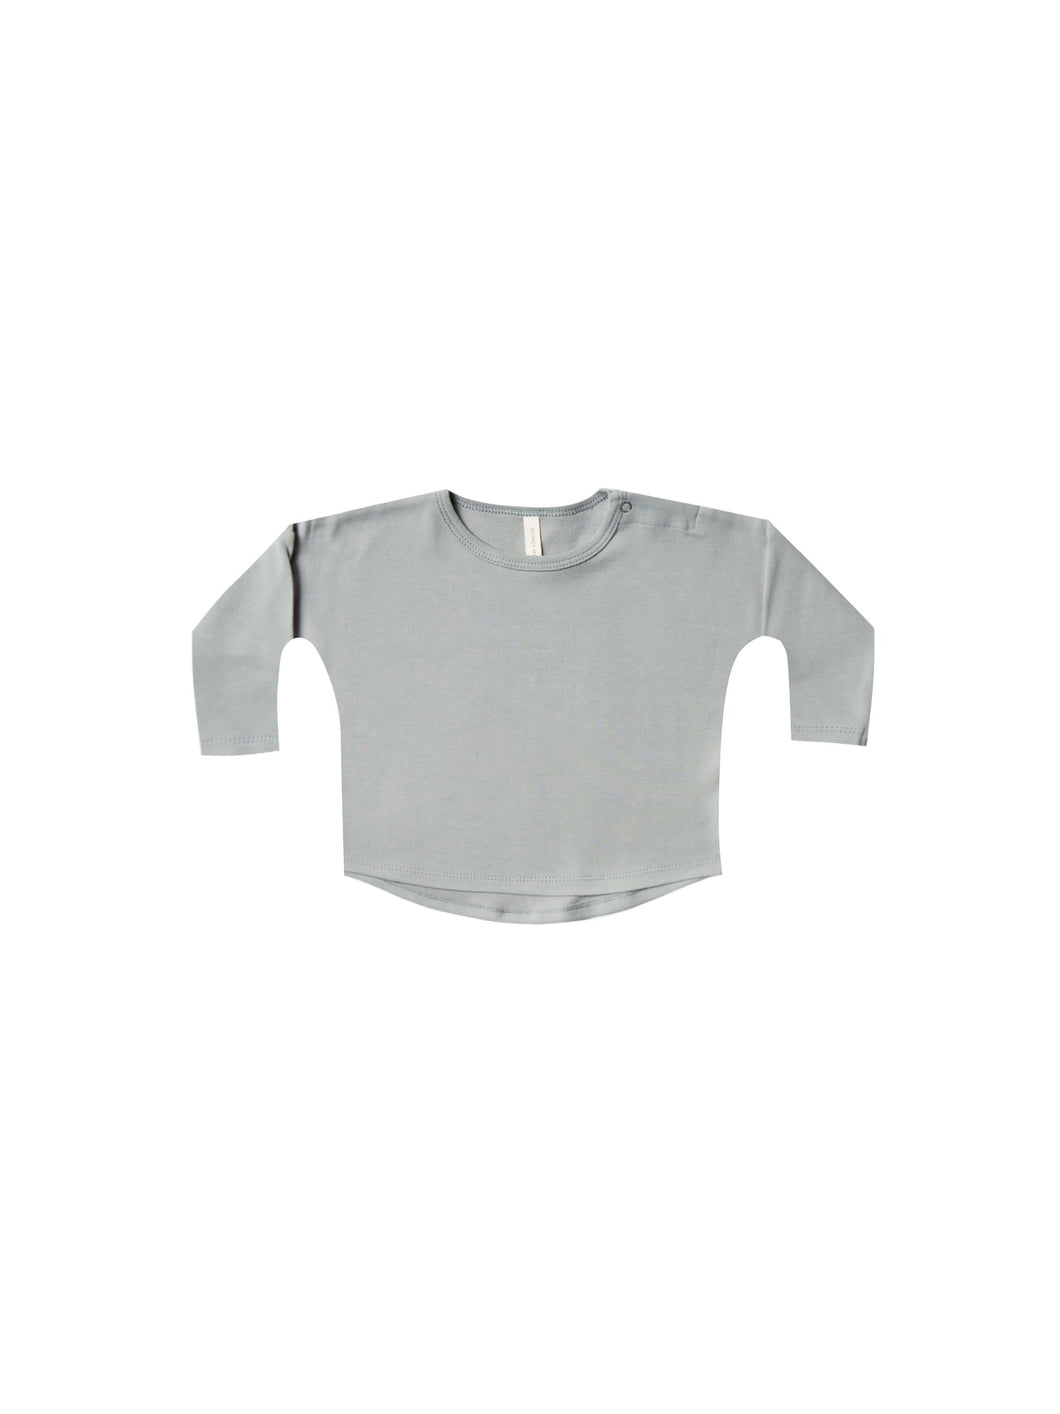 Longsleeve Baby Tee - Dusty Blue - WildLittleFawns